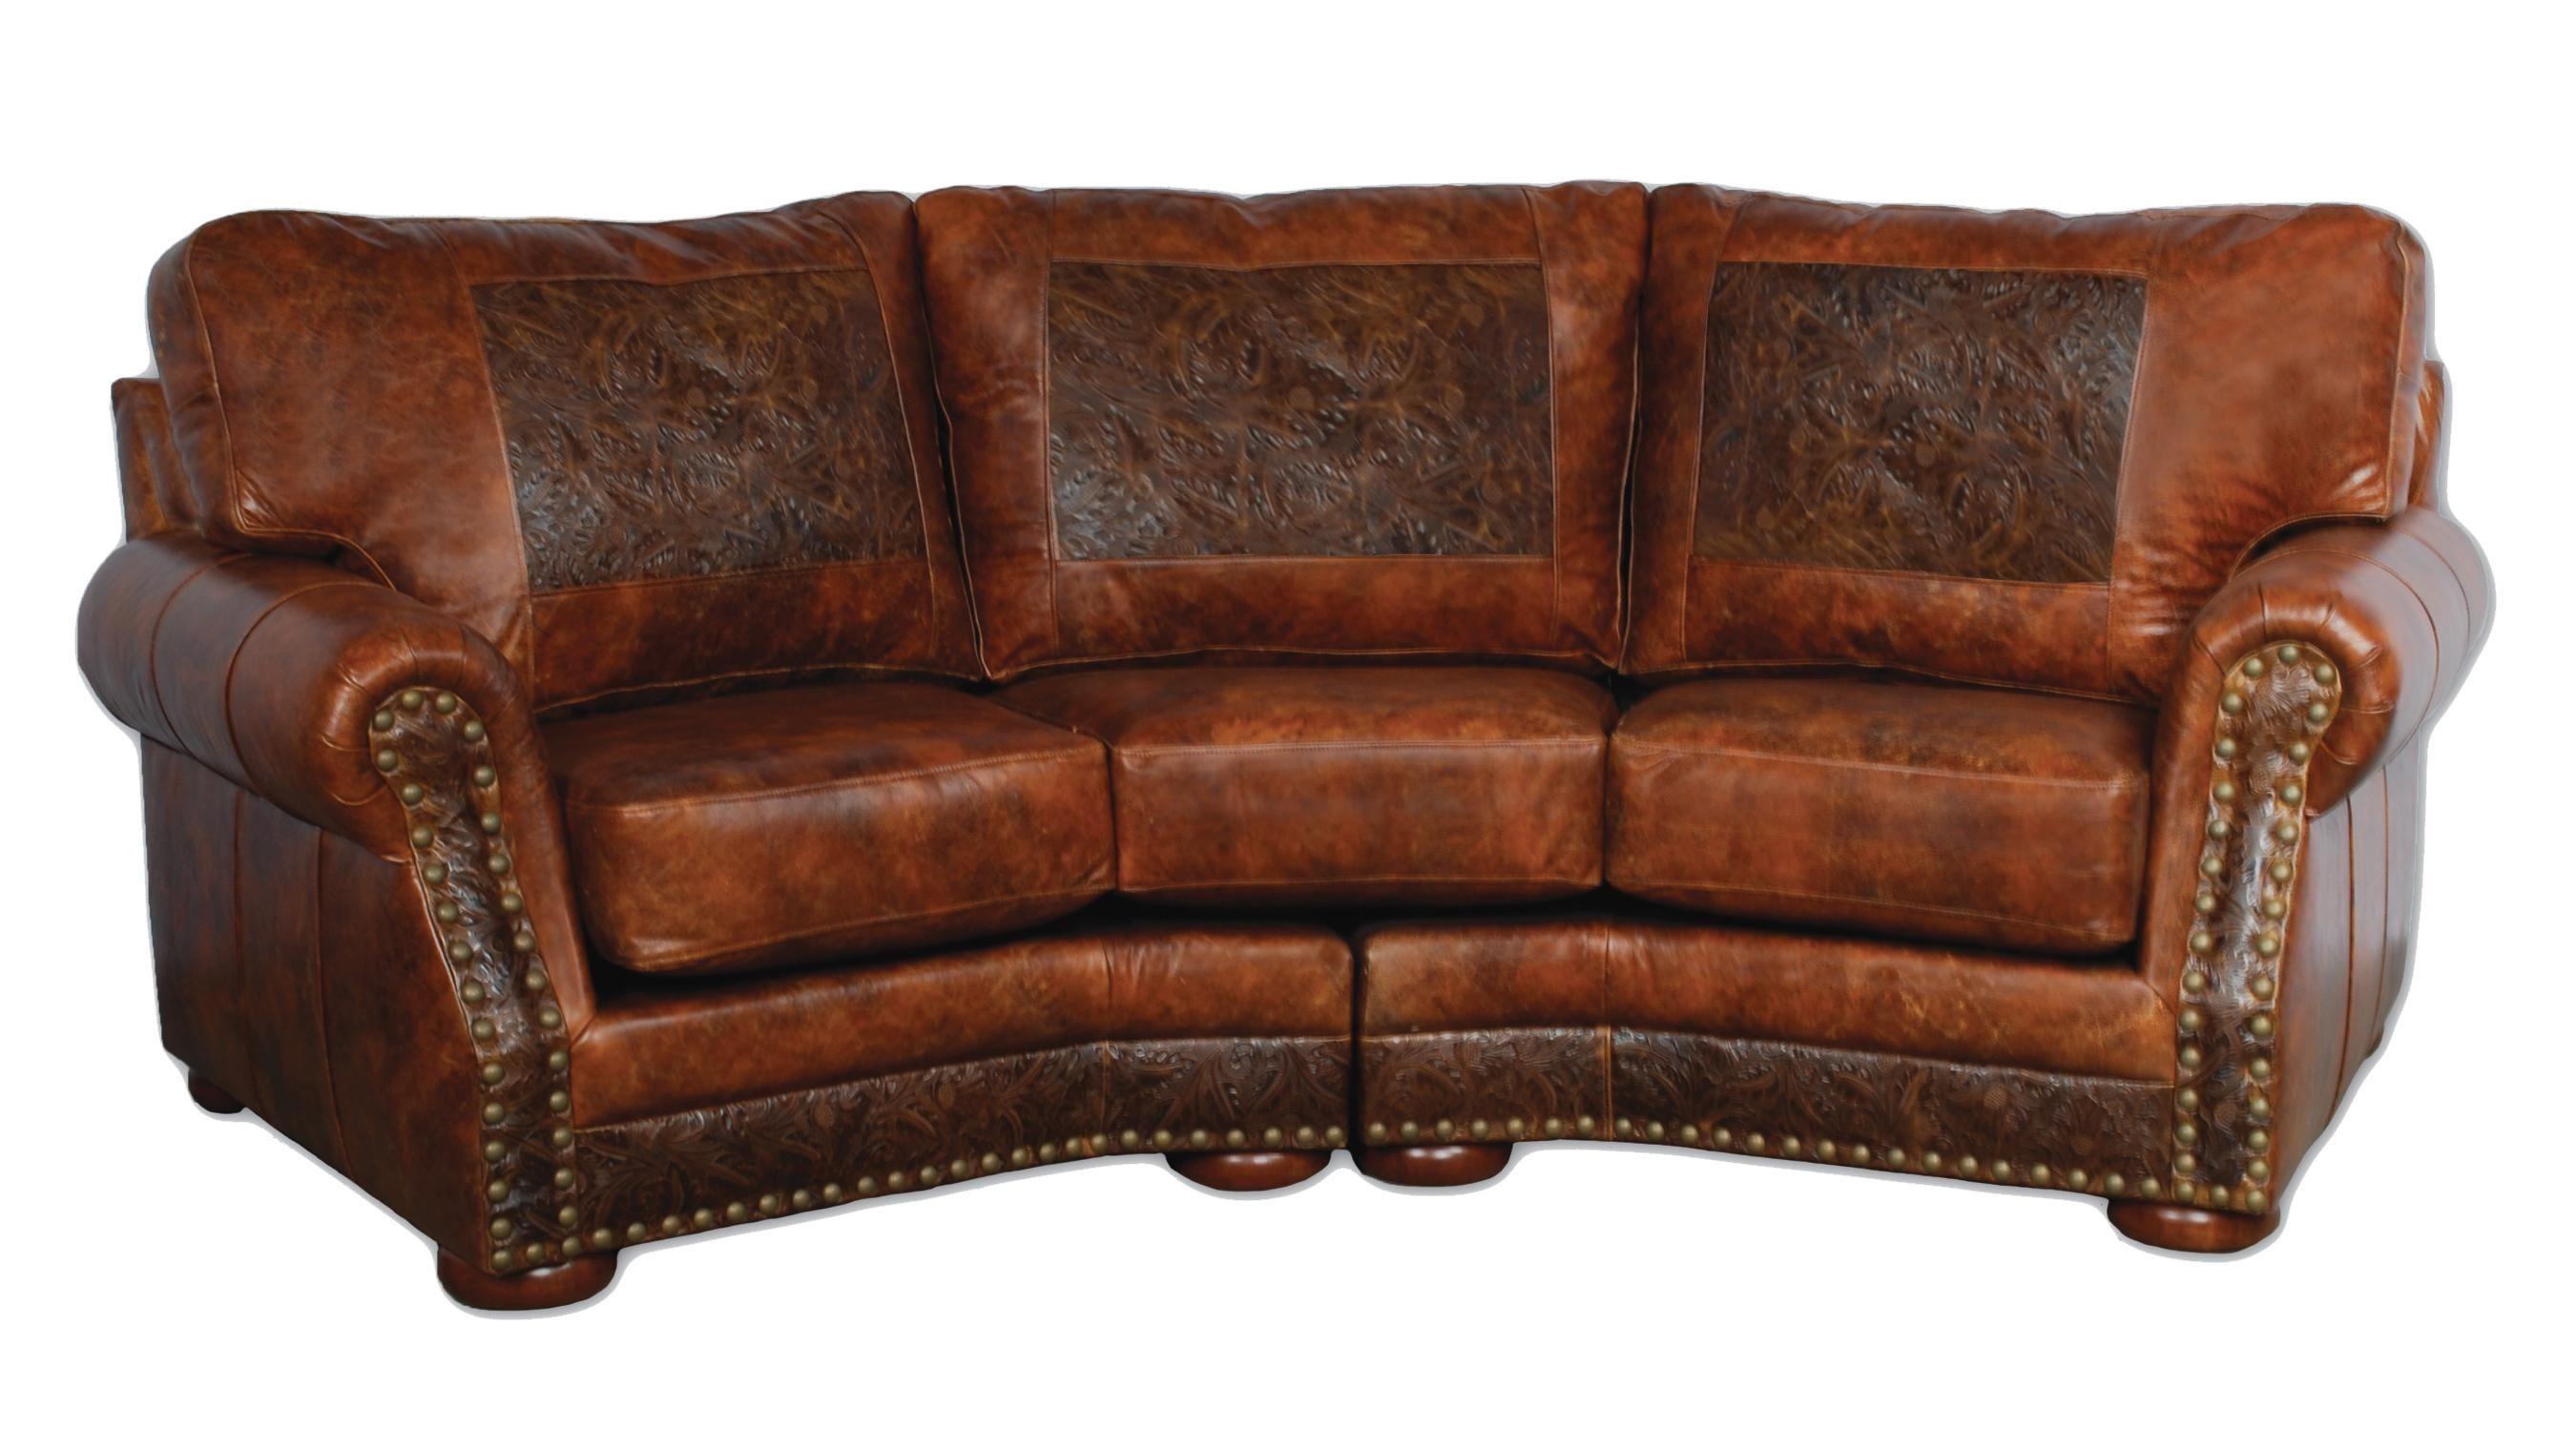 Modern Living Room Design Ideas With Distressed Leather Sofa Sofa